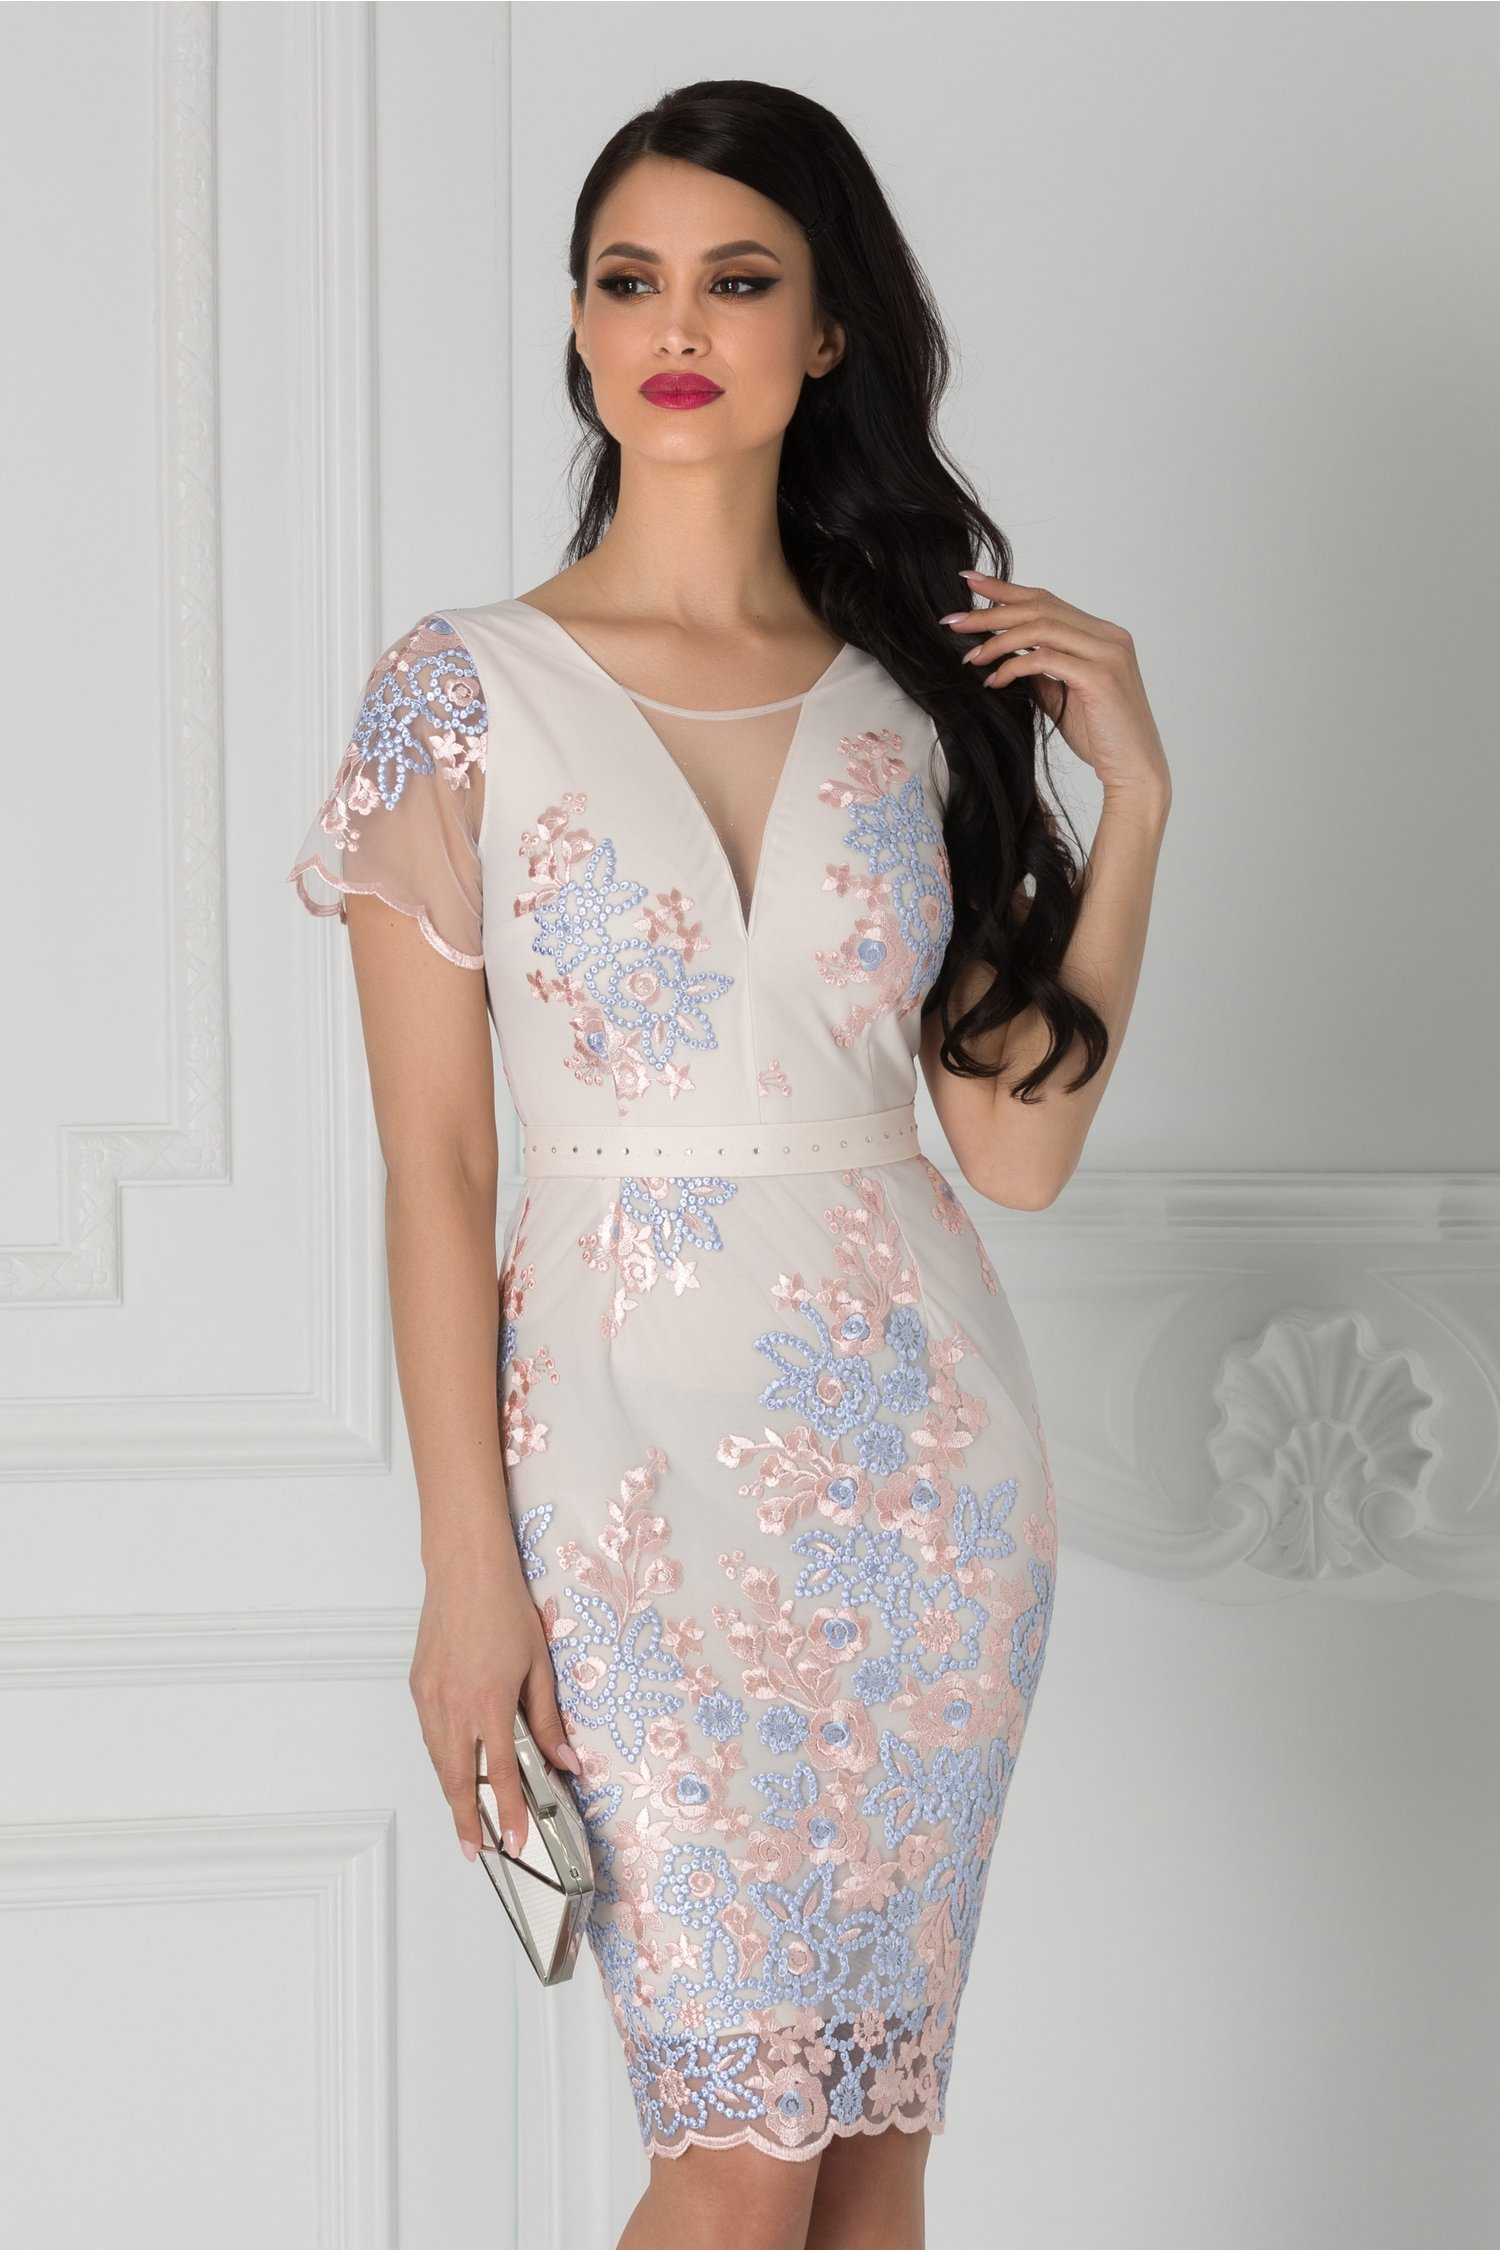 Rochie Anelie roz pal cu broderie florala si cordon in talie